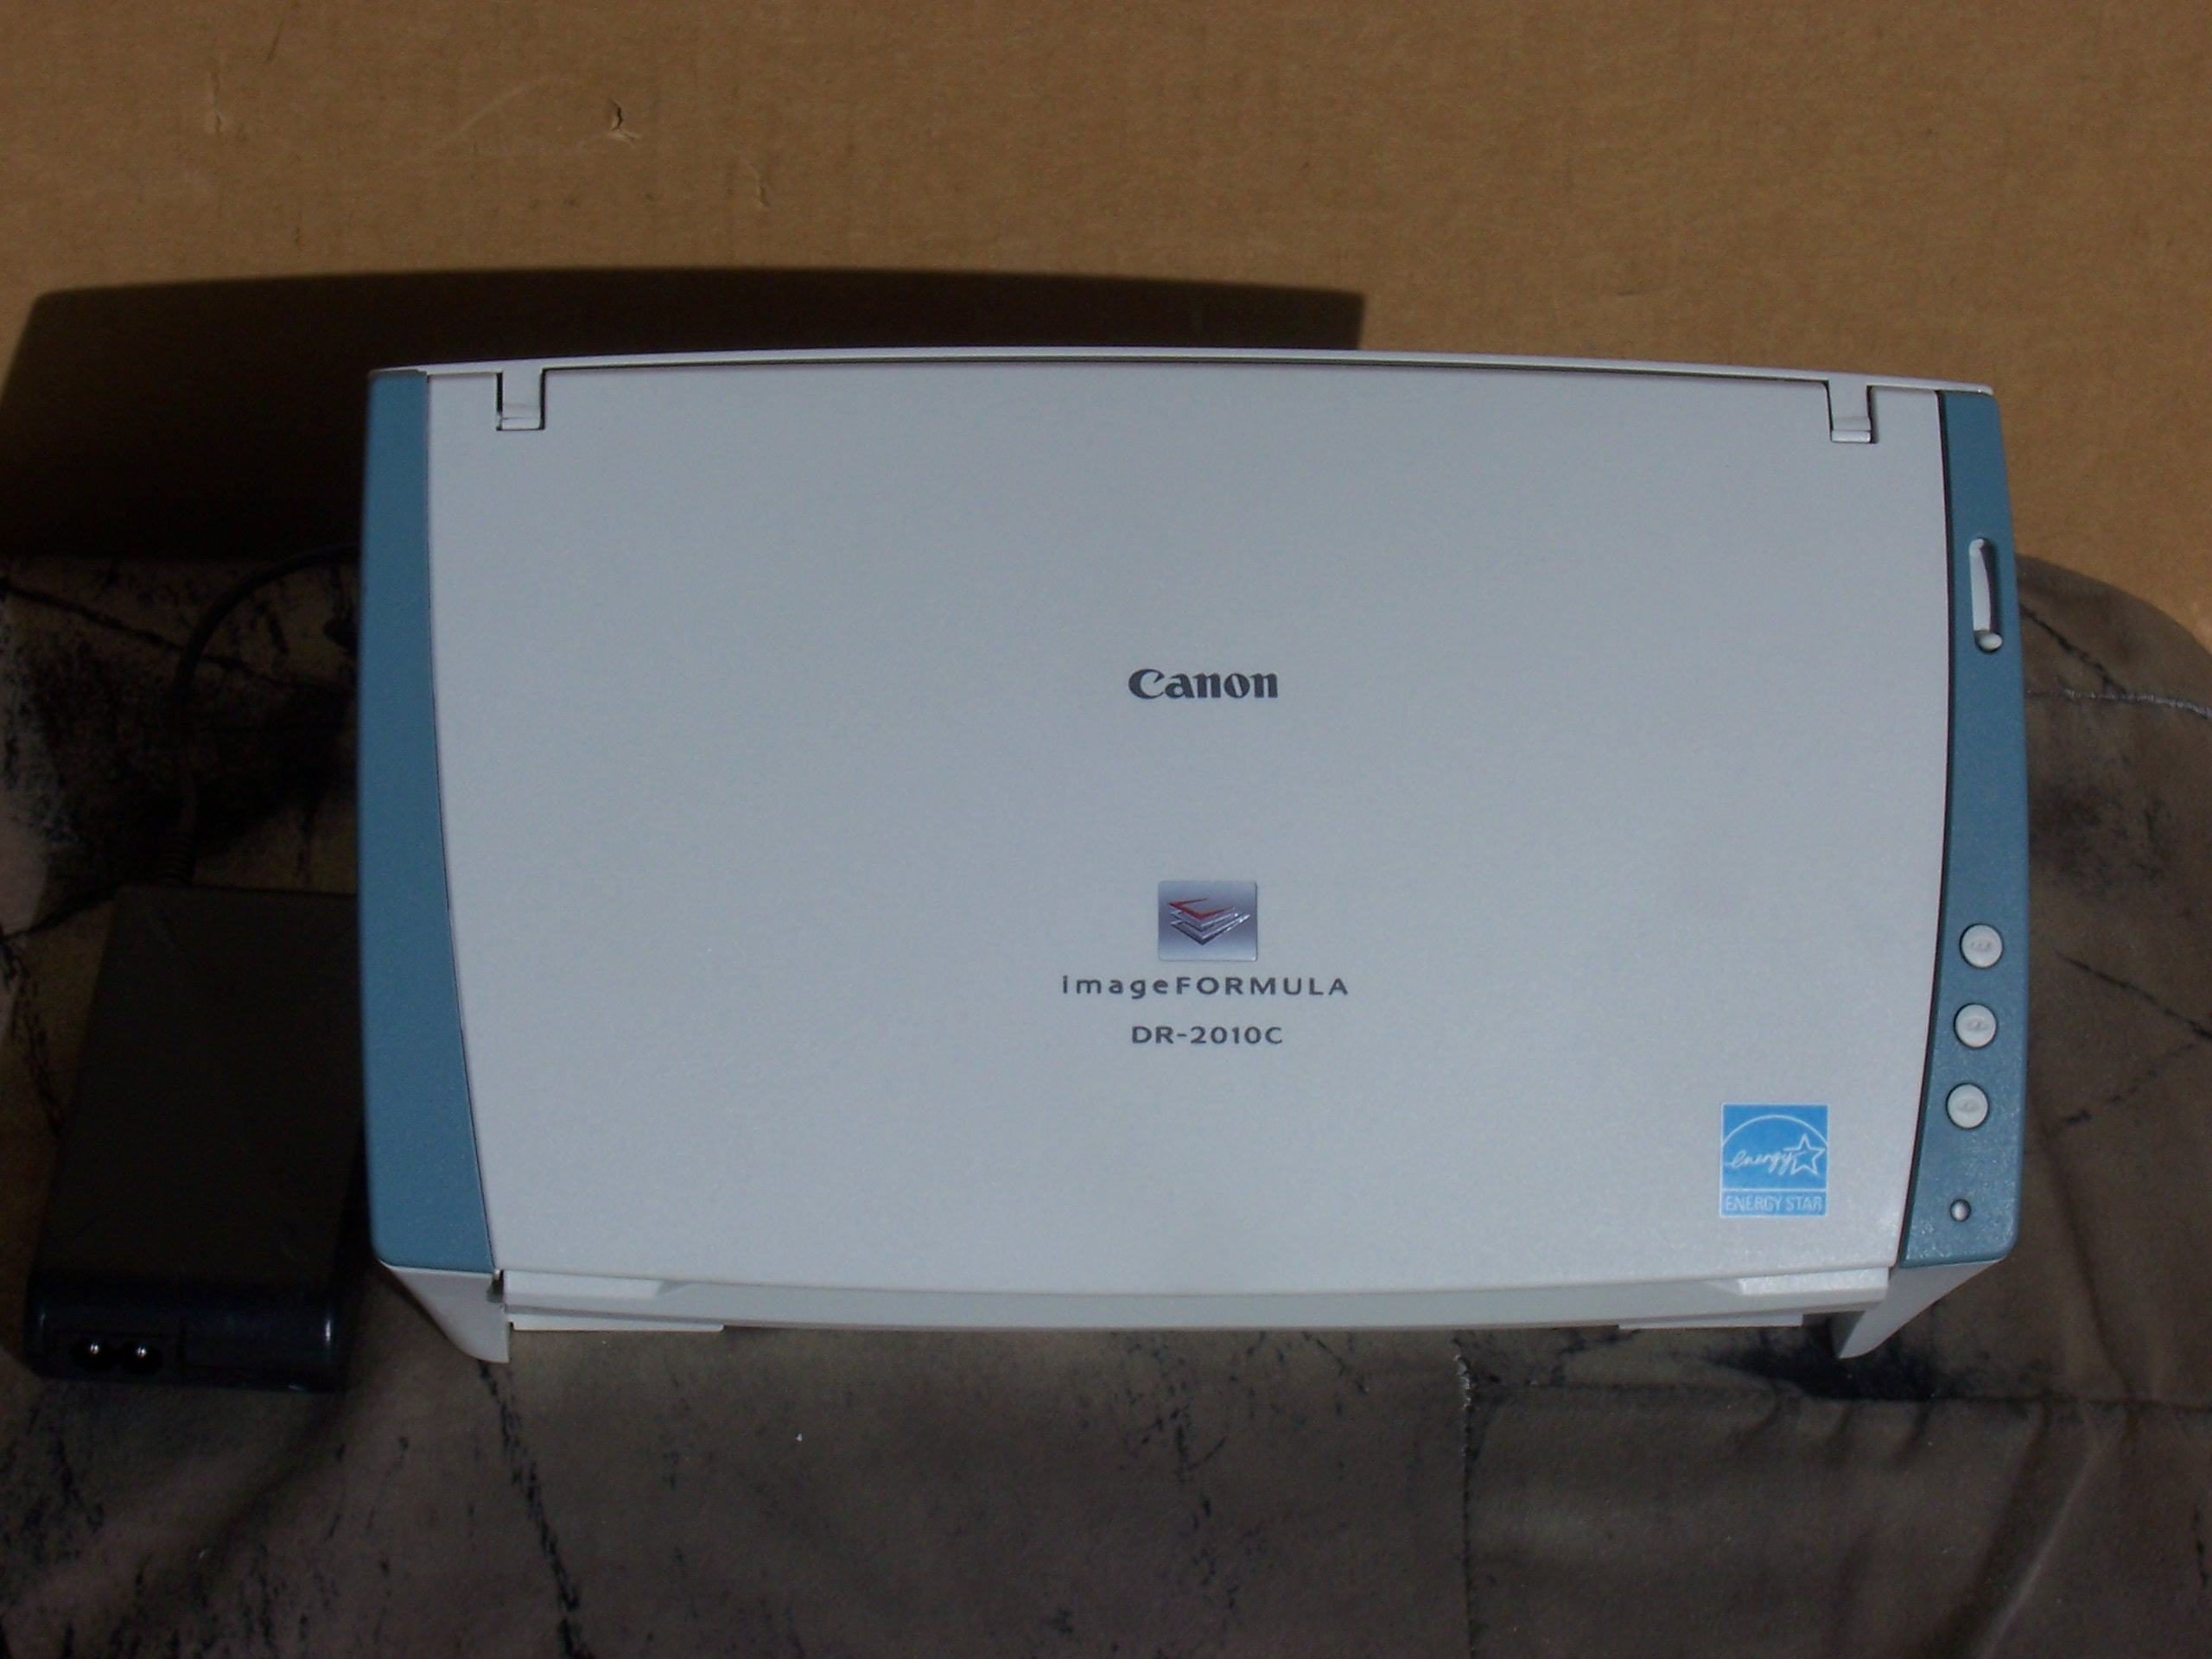 CANON IMAGEFORMULA DR-2010C SCANNER WINDOWS 7 X64 TREIBER